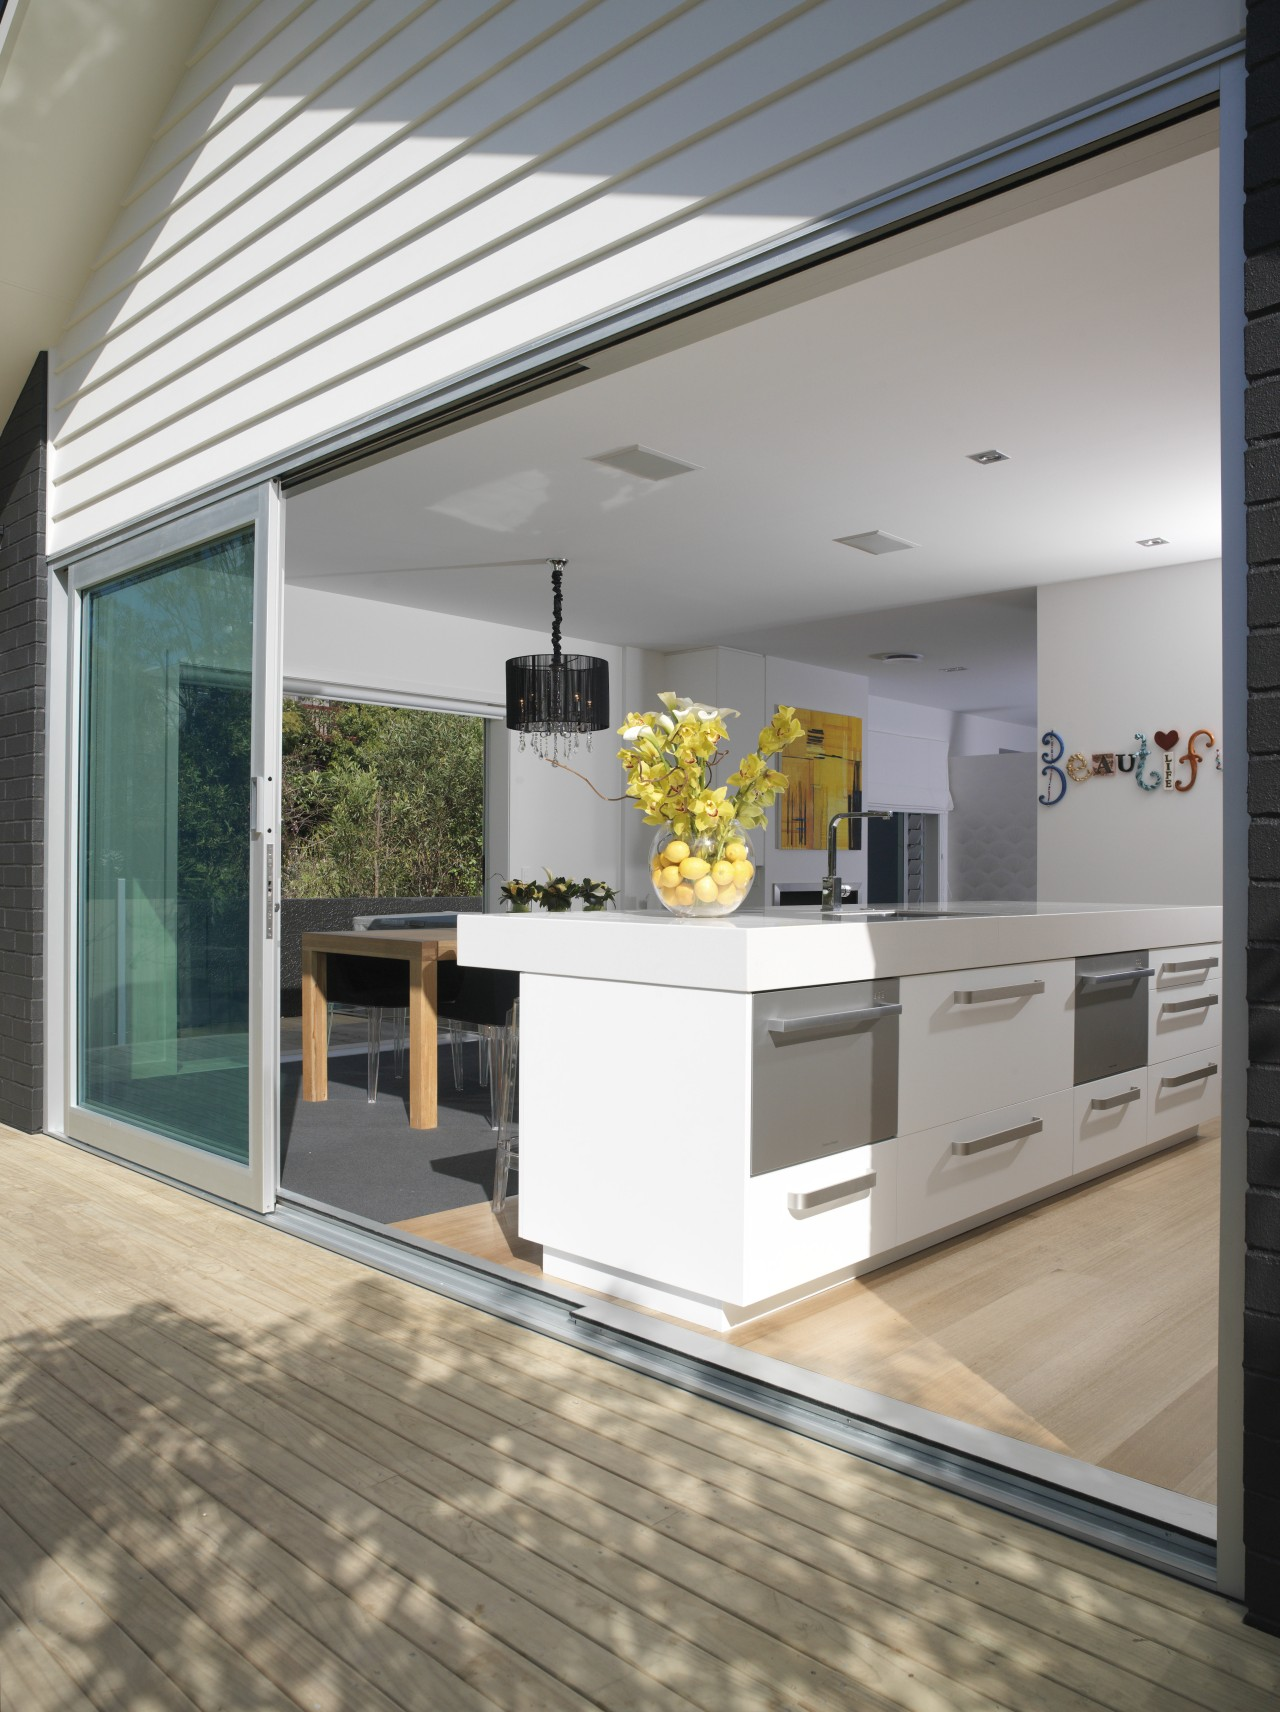 A view of some door and window joinery architecture, countertop, daylighting, floor, house, interior design, kitchen, real estate, window, gray, white